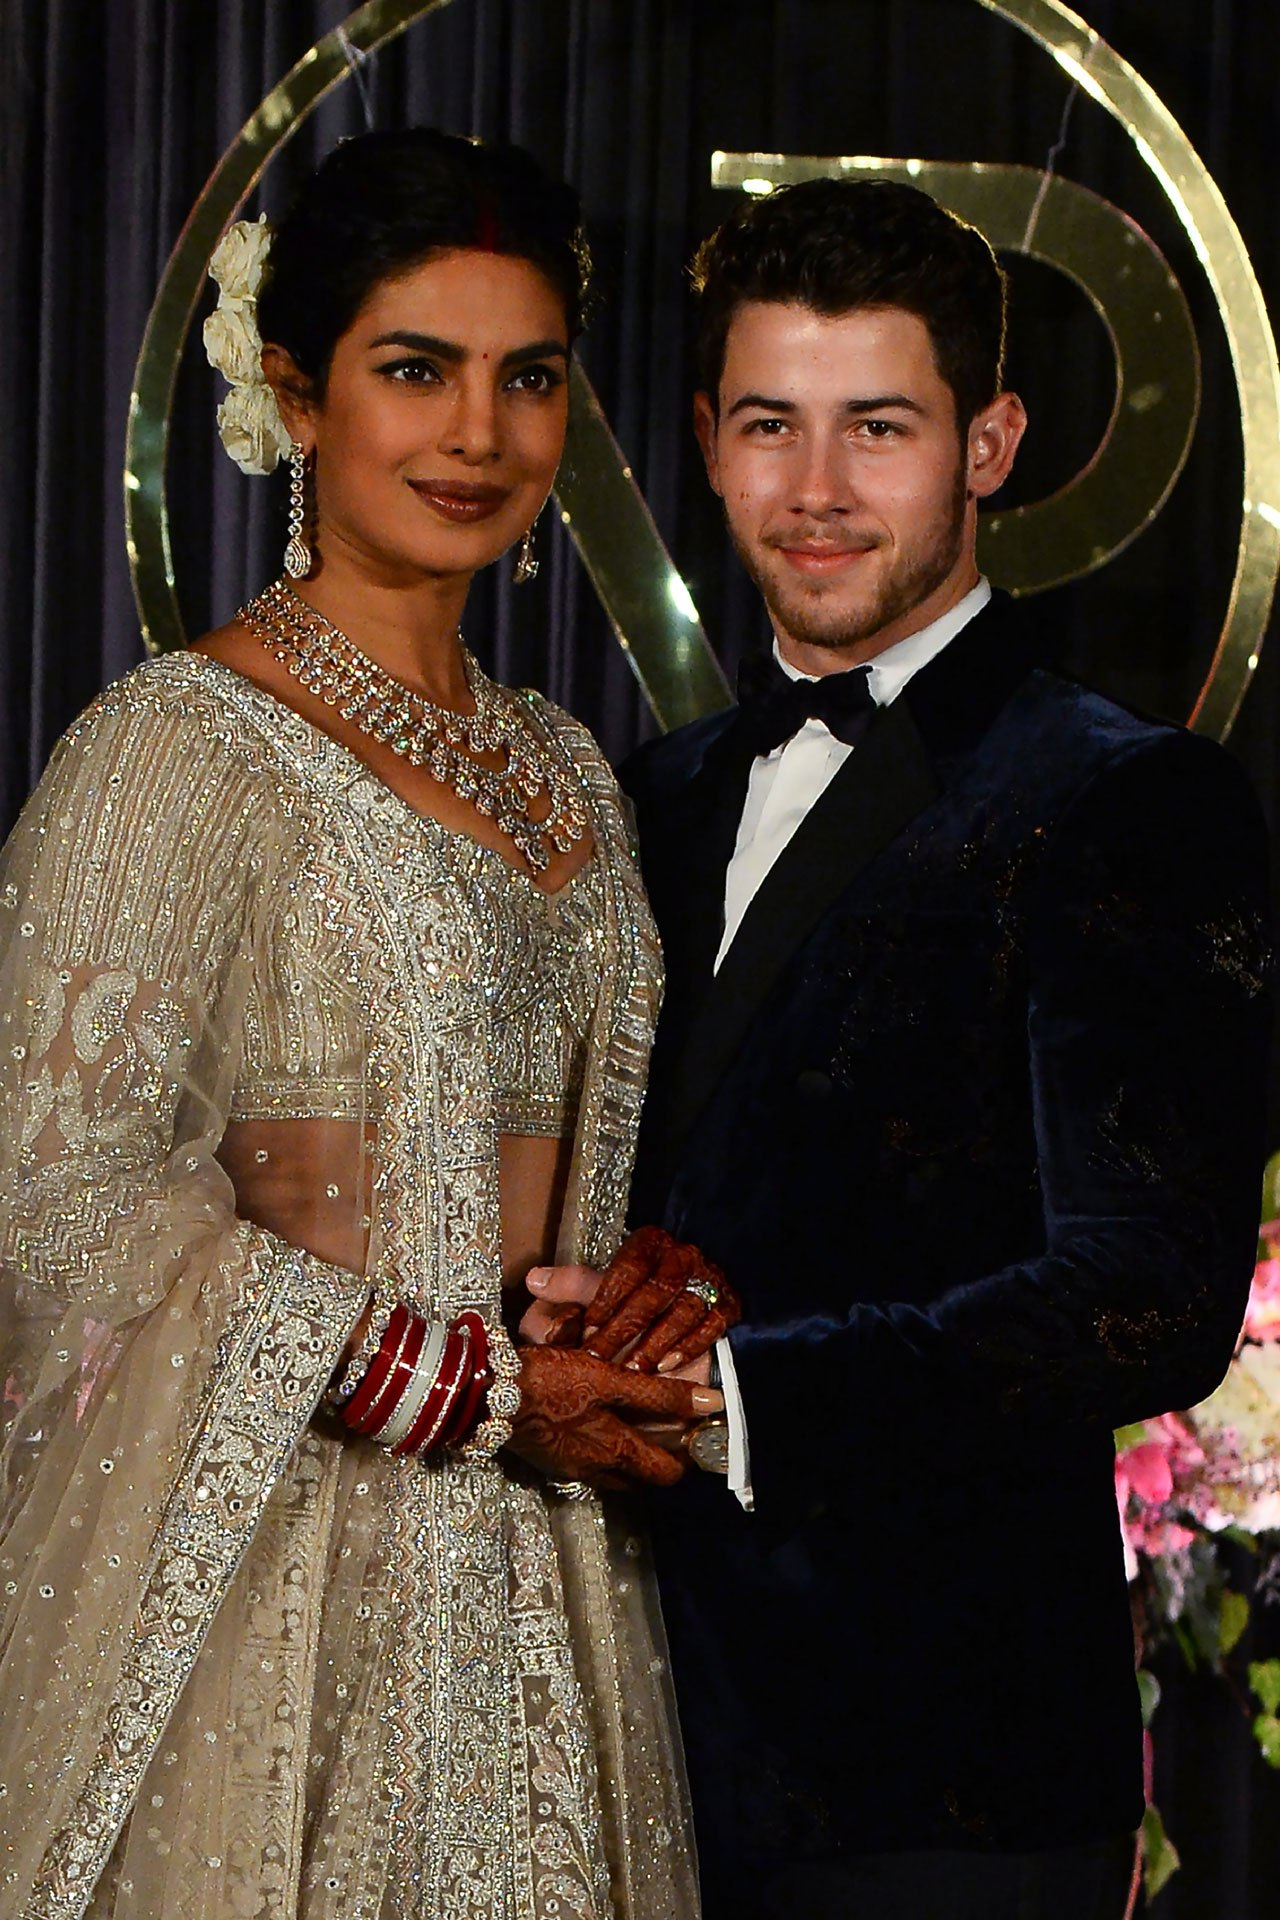 Priyanka Chopra and Nick Jonas share their intimate wedding portraits